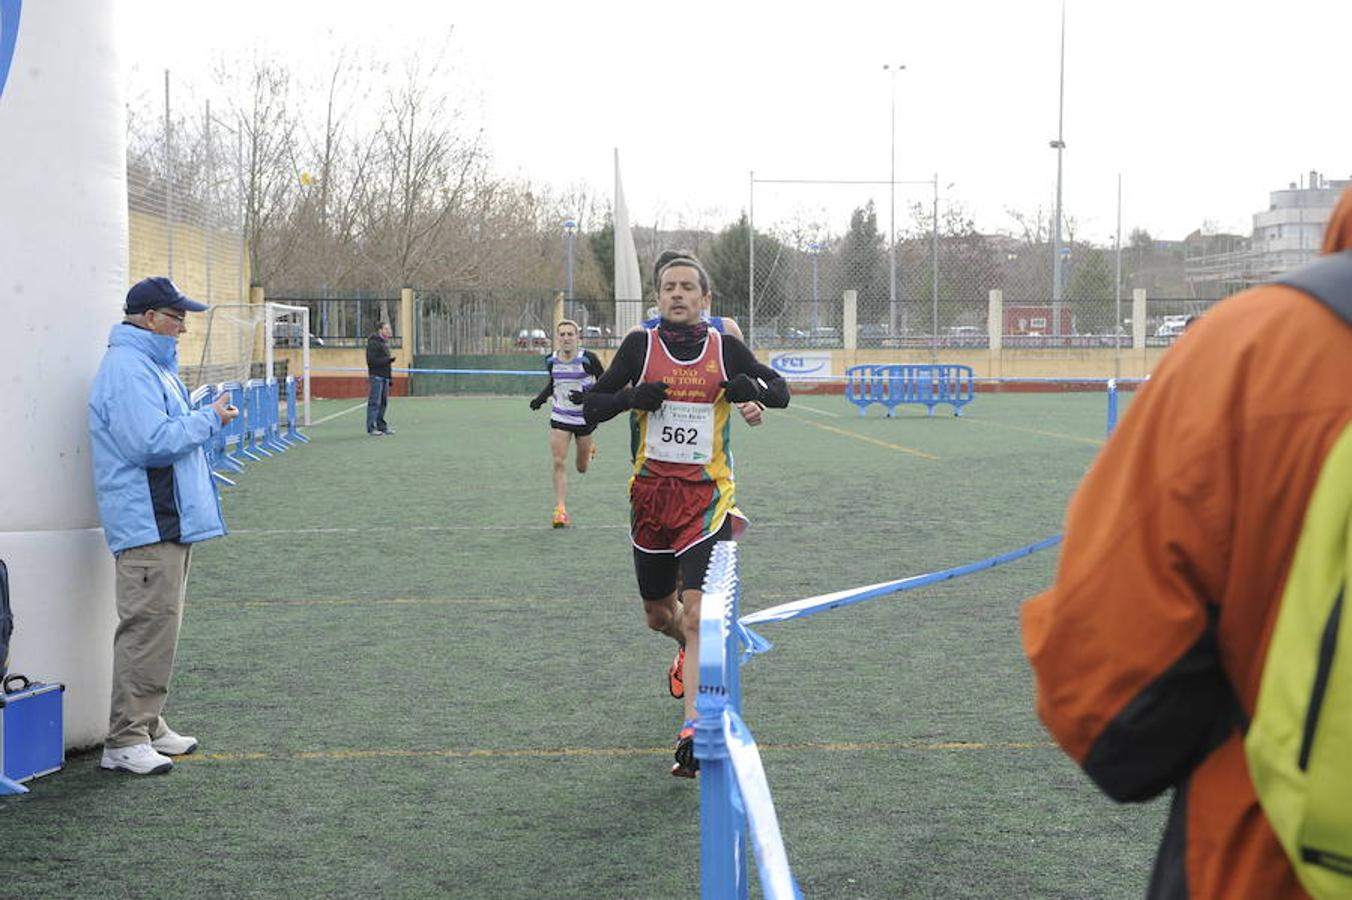 XX Carrera Popular Don Bosco de Valladolid (2/4)